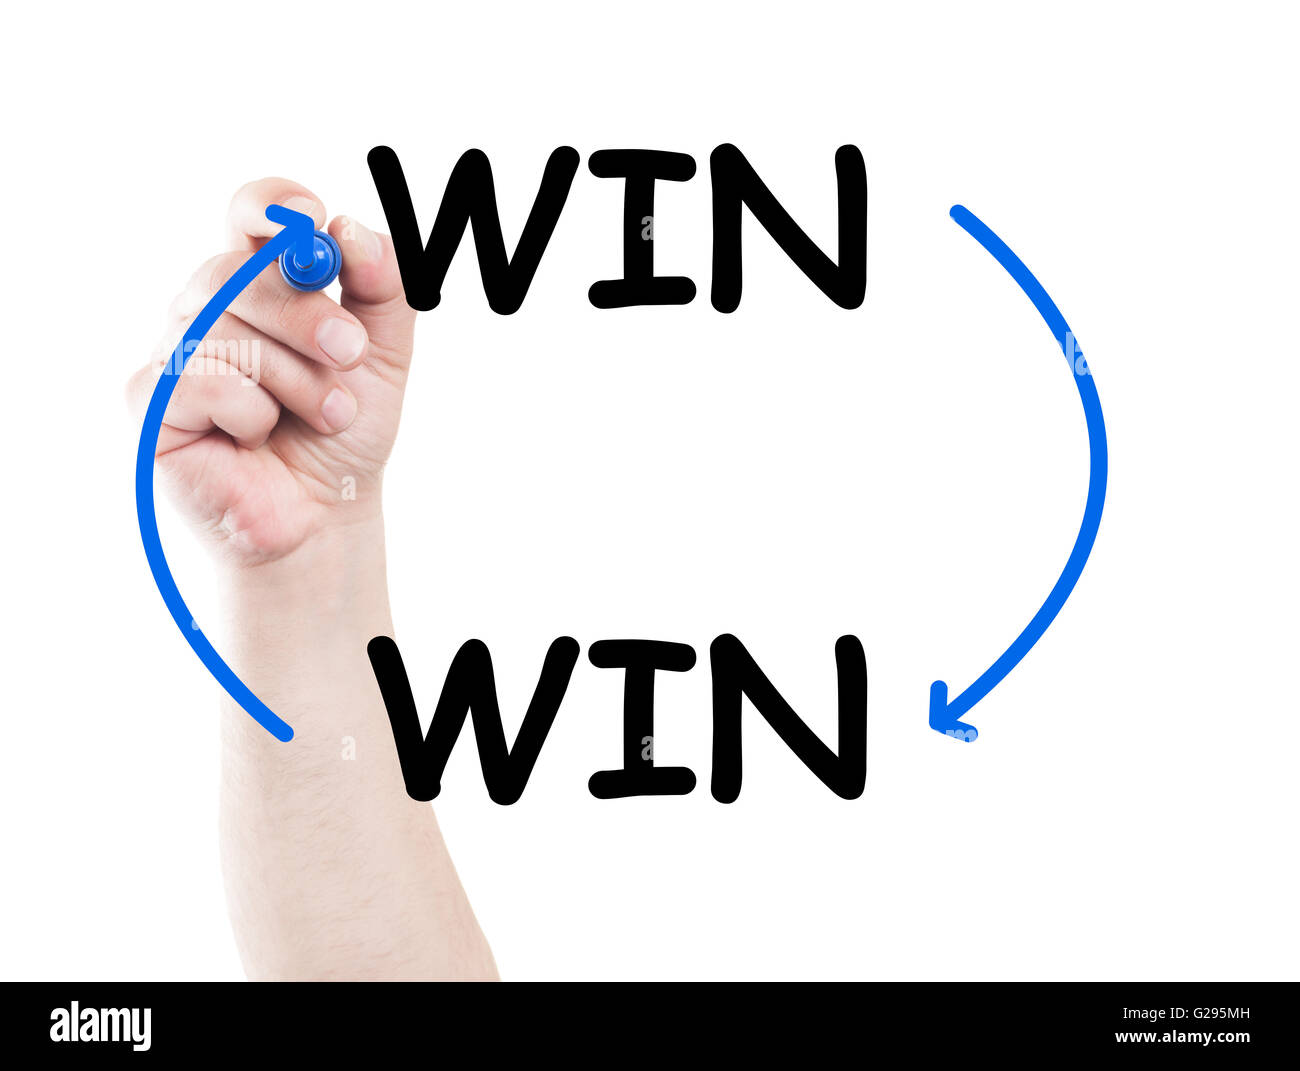 Win win solution concept made on transparent wipe board with a hand holding a marker - Stock Image